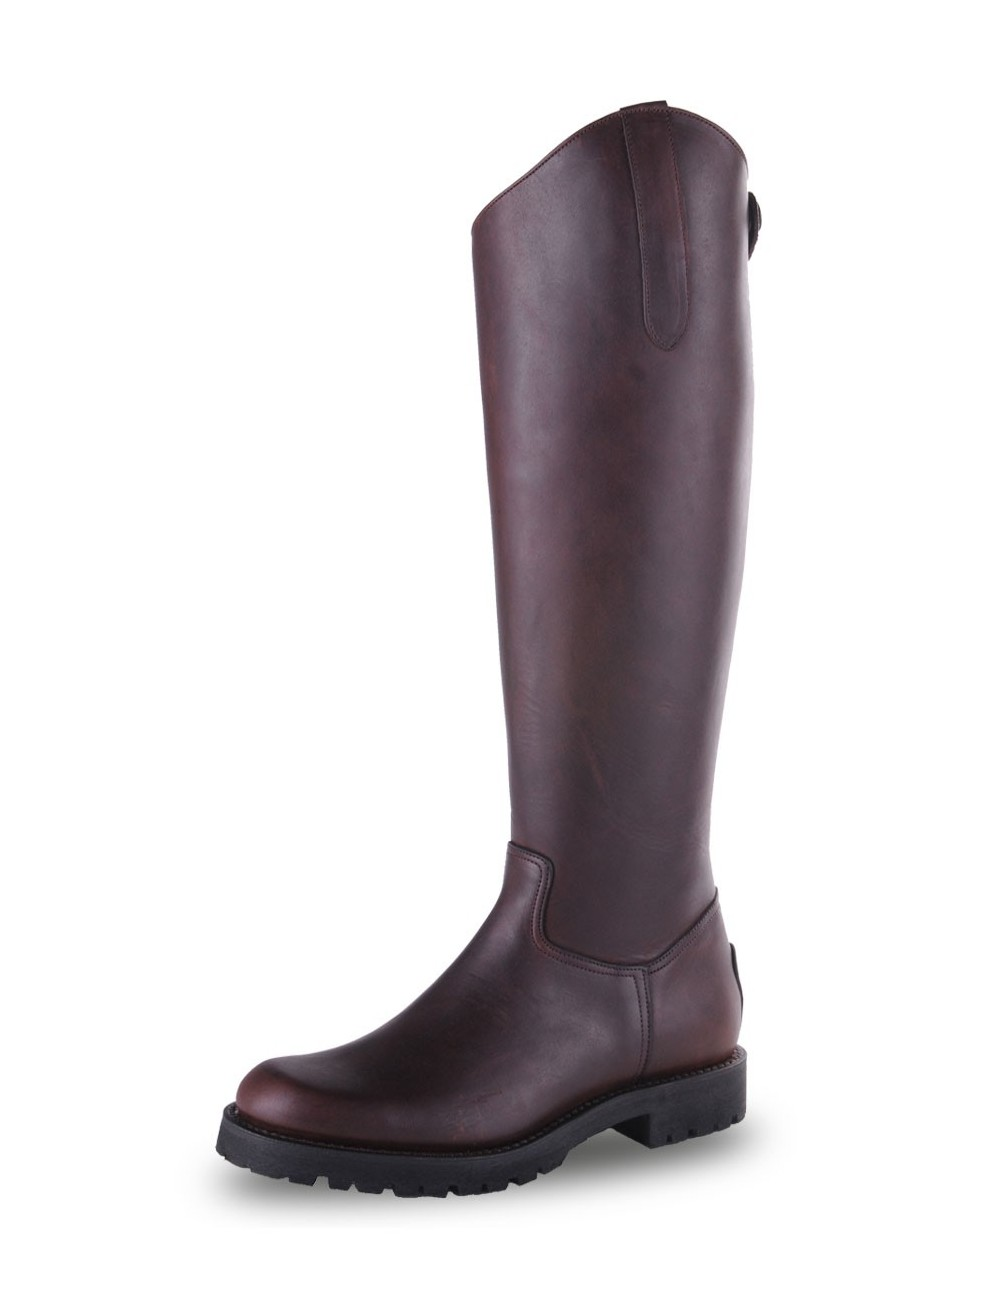 bottes grande taille cuir